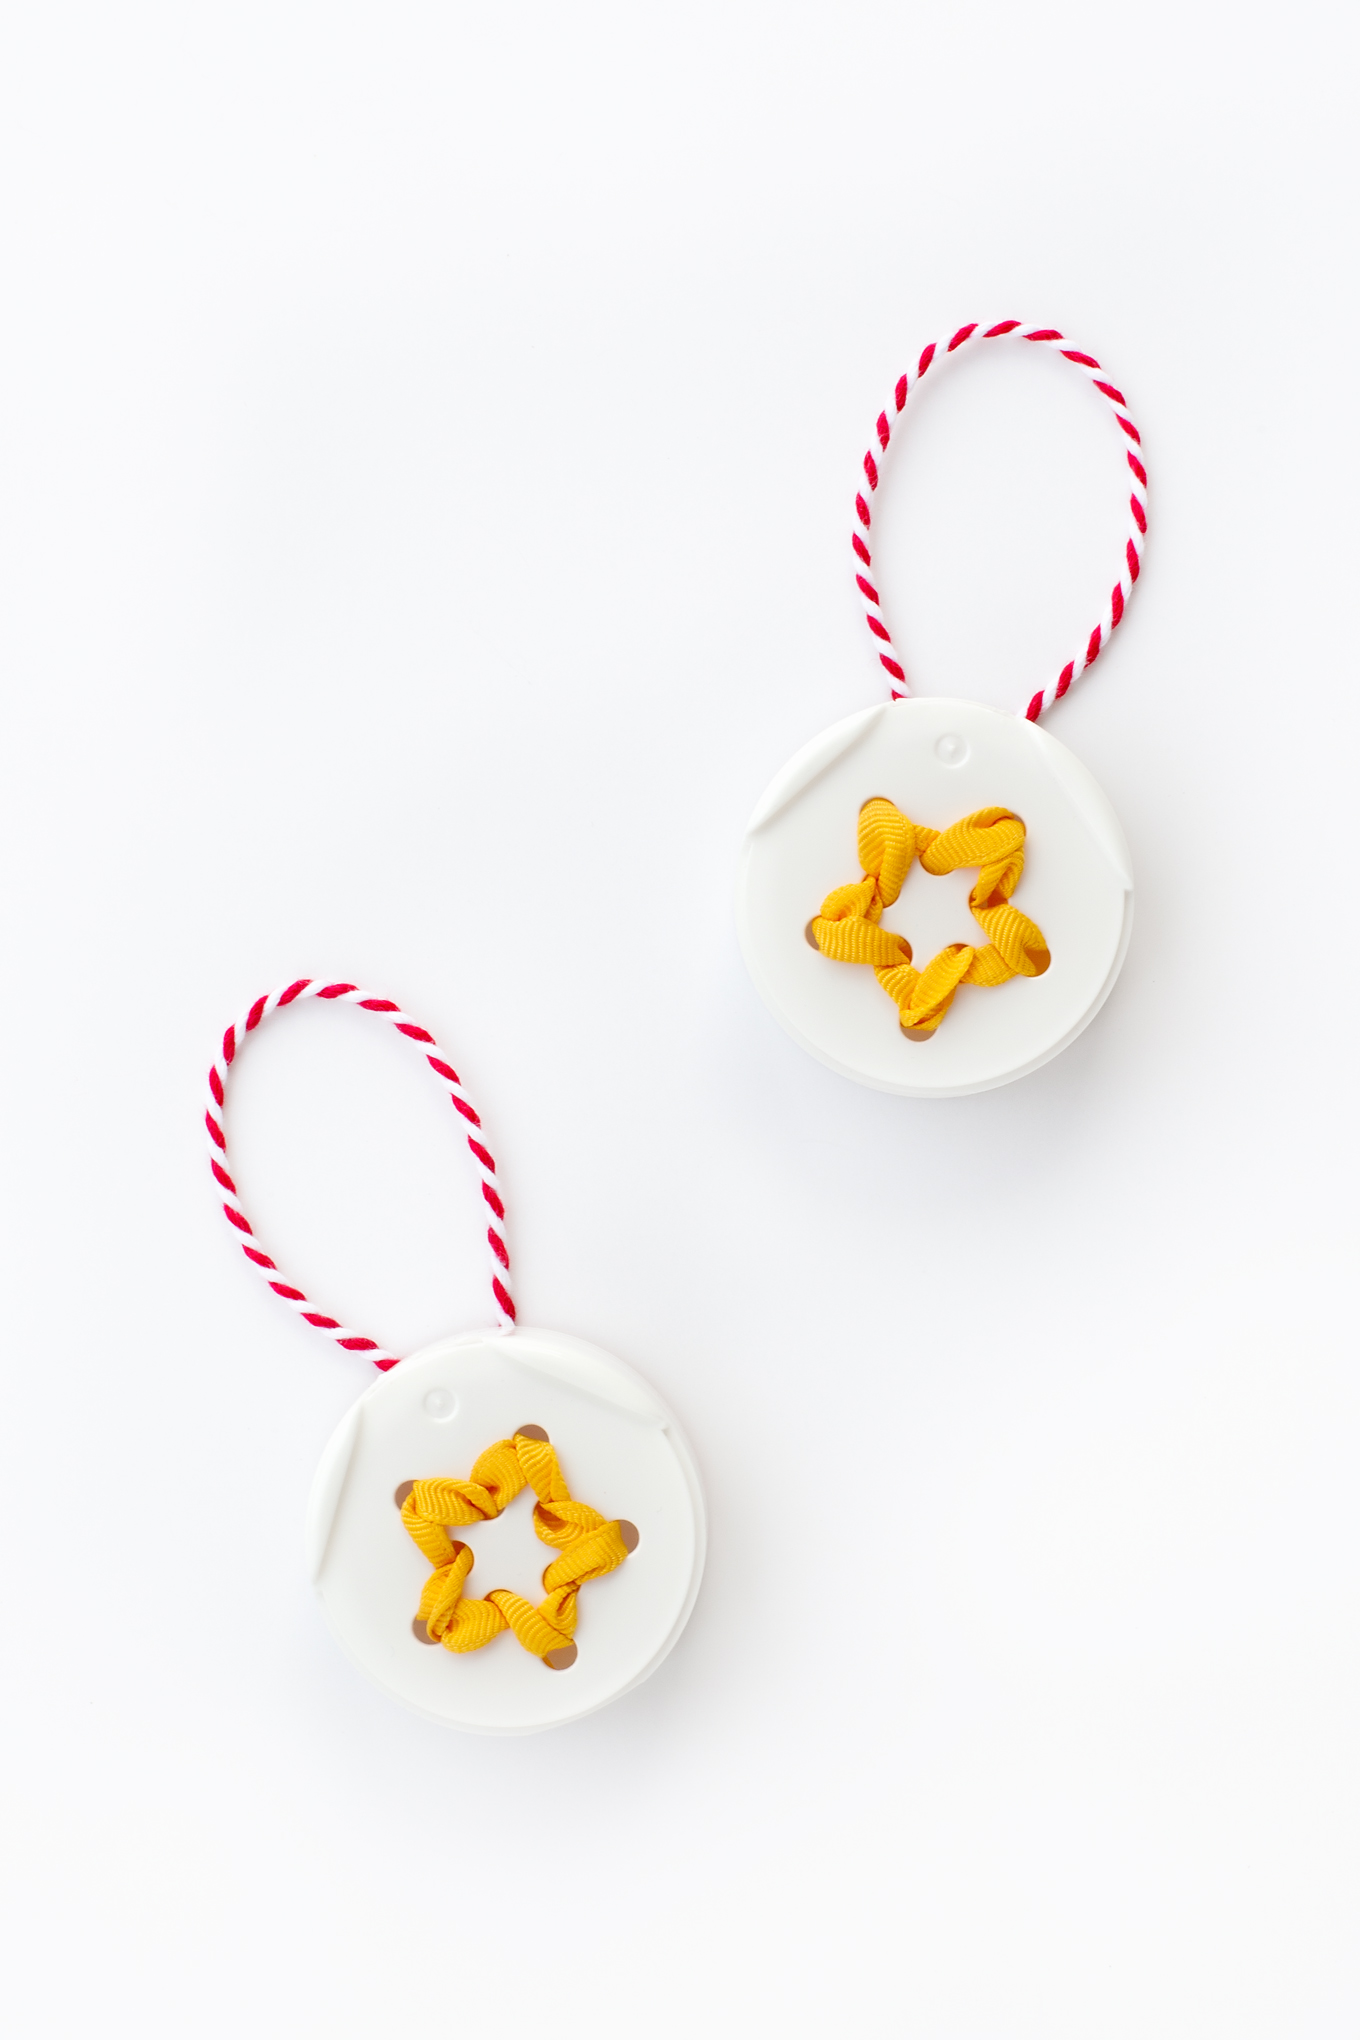 How to Make Easy and Fun Christmas Star Ornaments with Spice Jar Lids